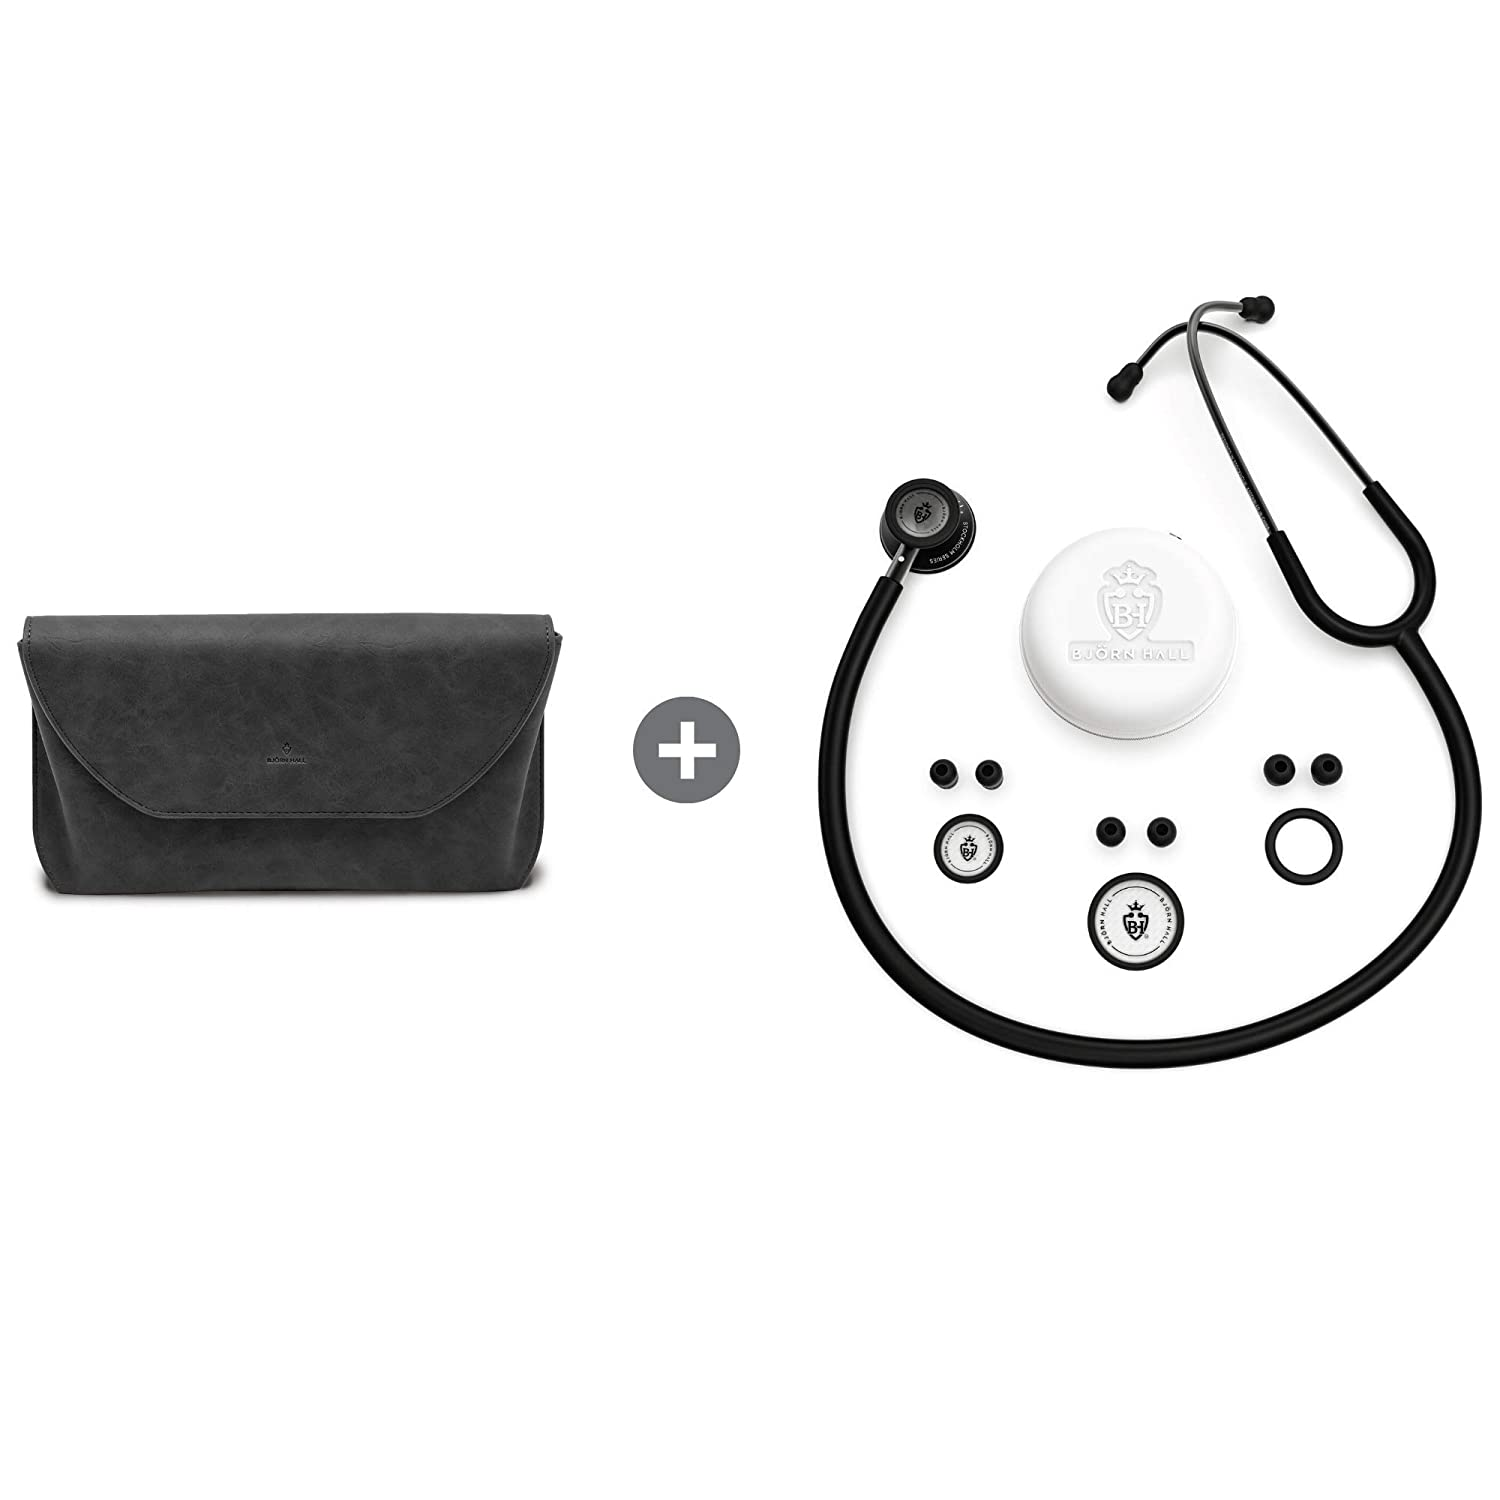 BJÖRN HALL Scandinavian Classic Matte Black Stethoscope & Black Carrying Case | Both are Lightweight & Stylish | Perfect Gift for Any Nurse